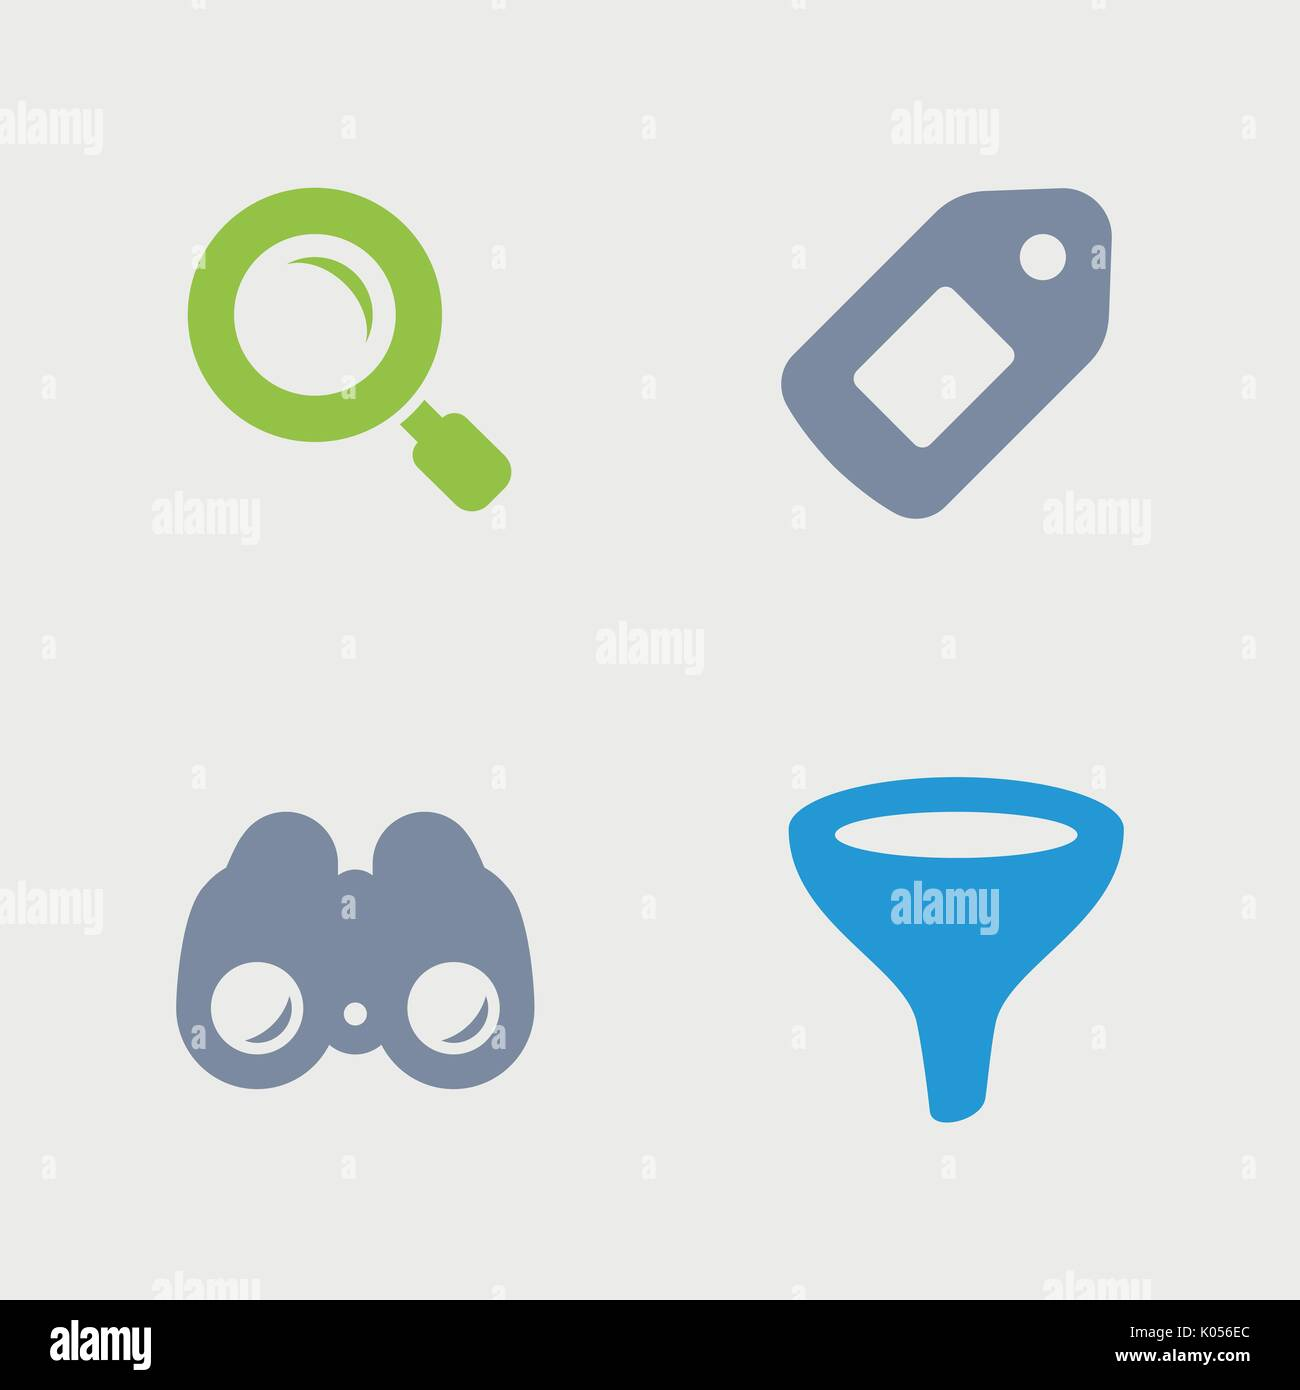 A set of 4 professional, pixel-perfect icons designed on a 32x32 pixel grid. - Stock Vector